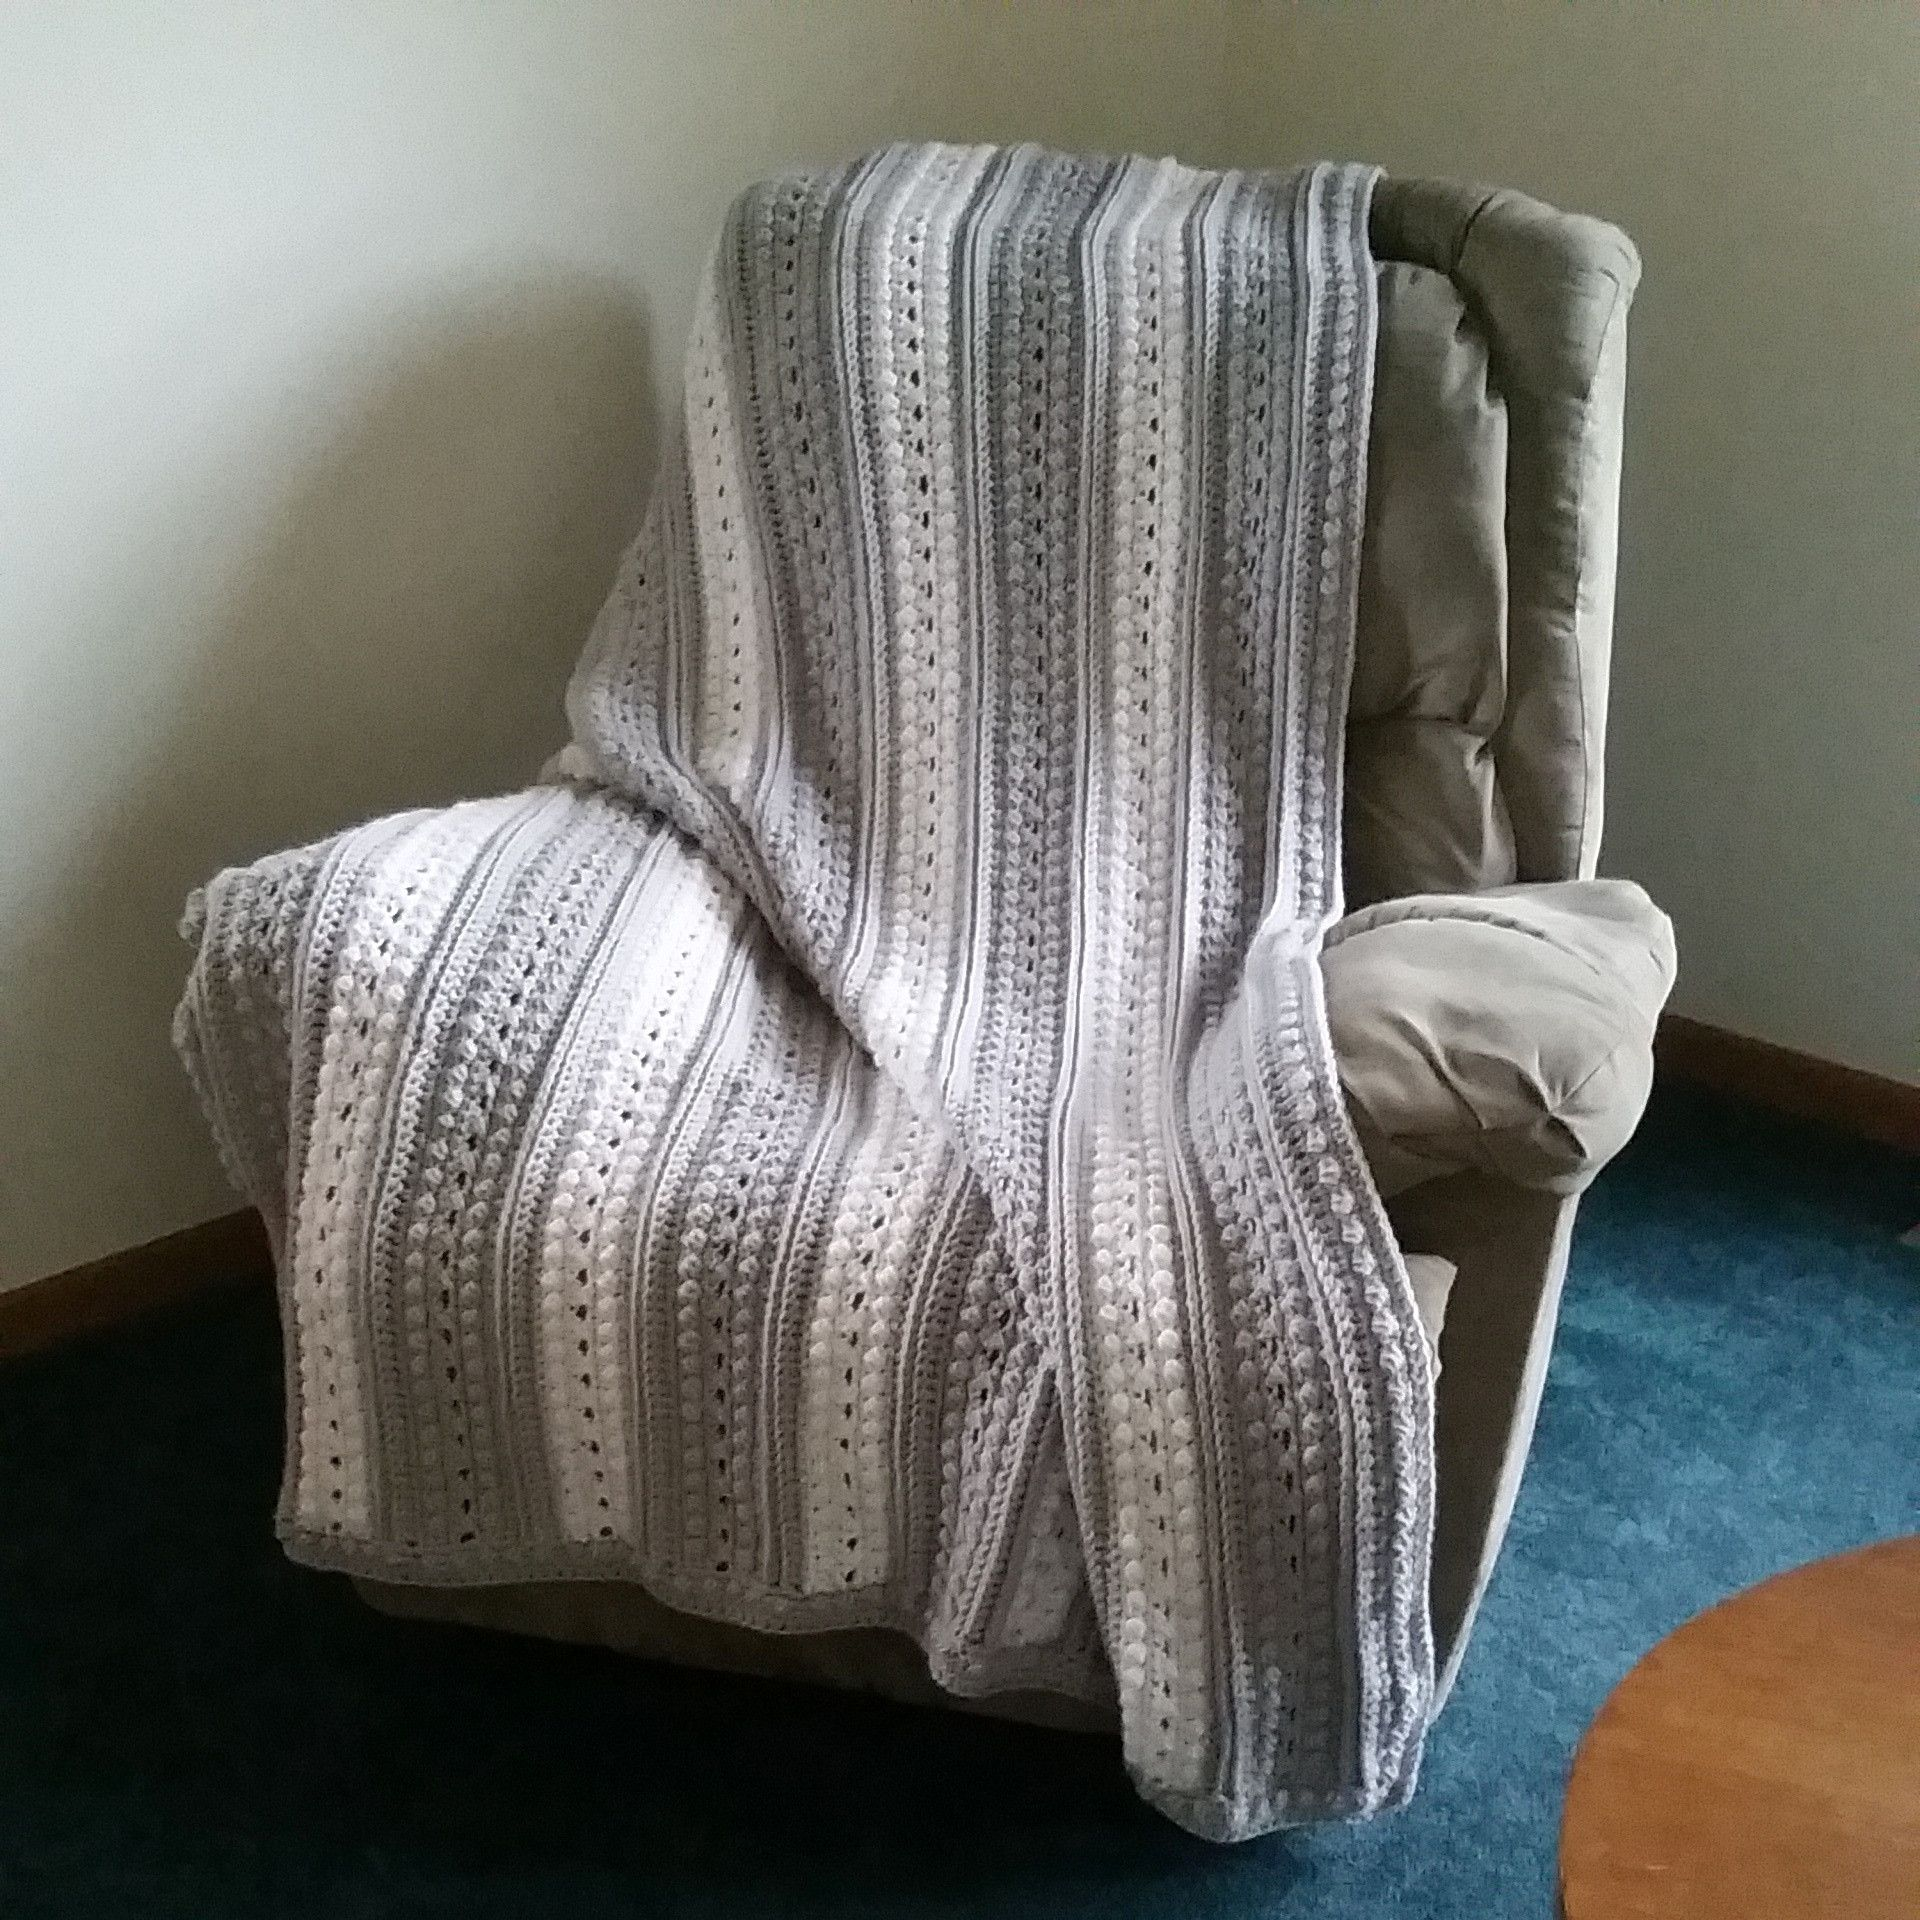 Crochet Aran Afghan | quilts and afghans | Pinterest